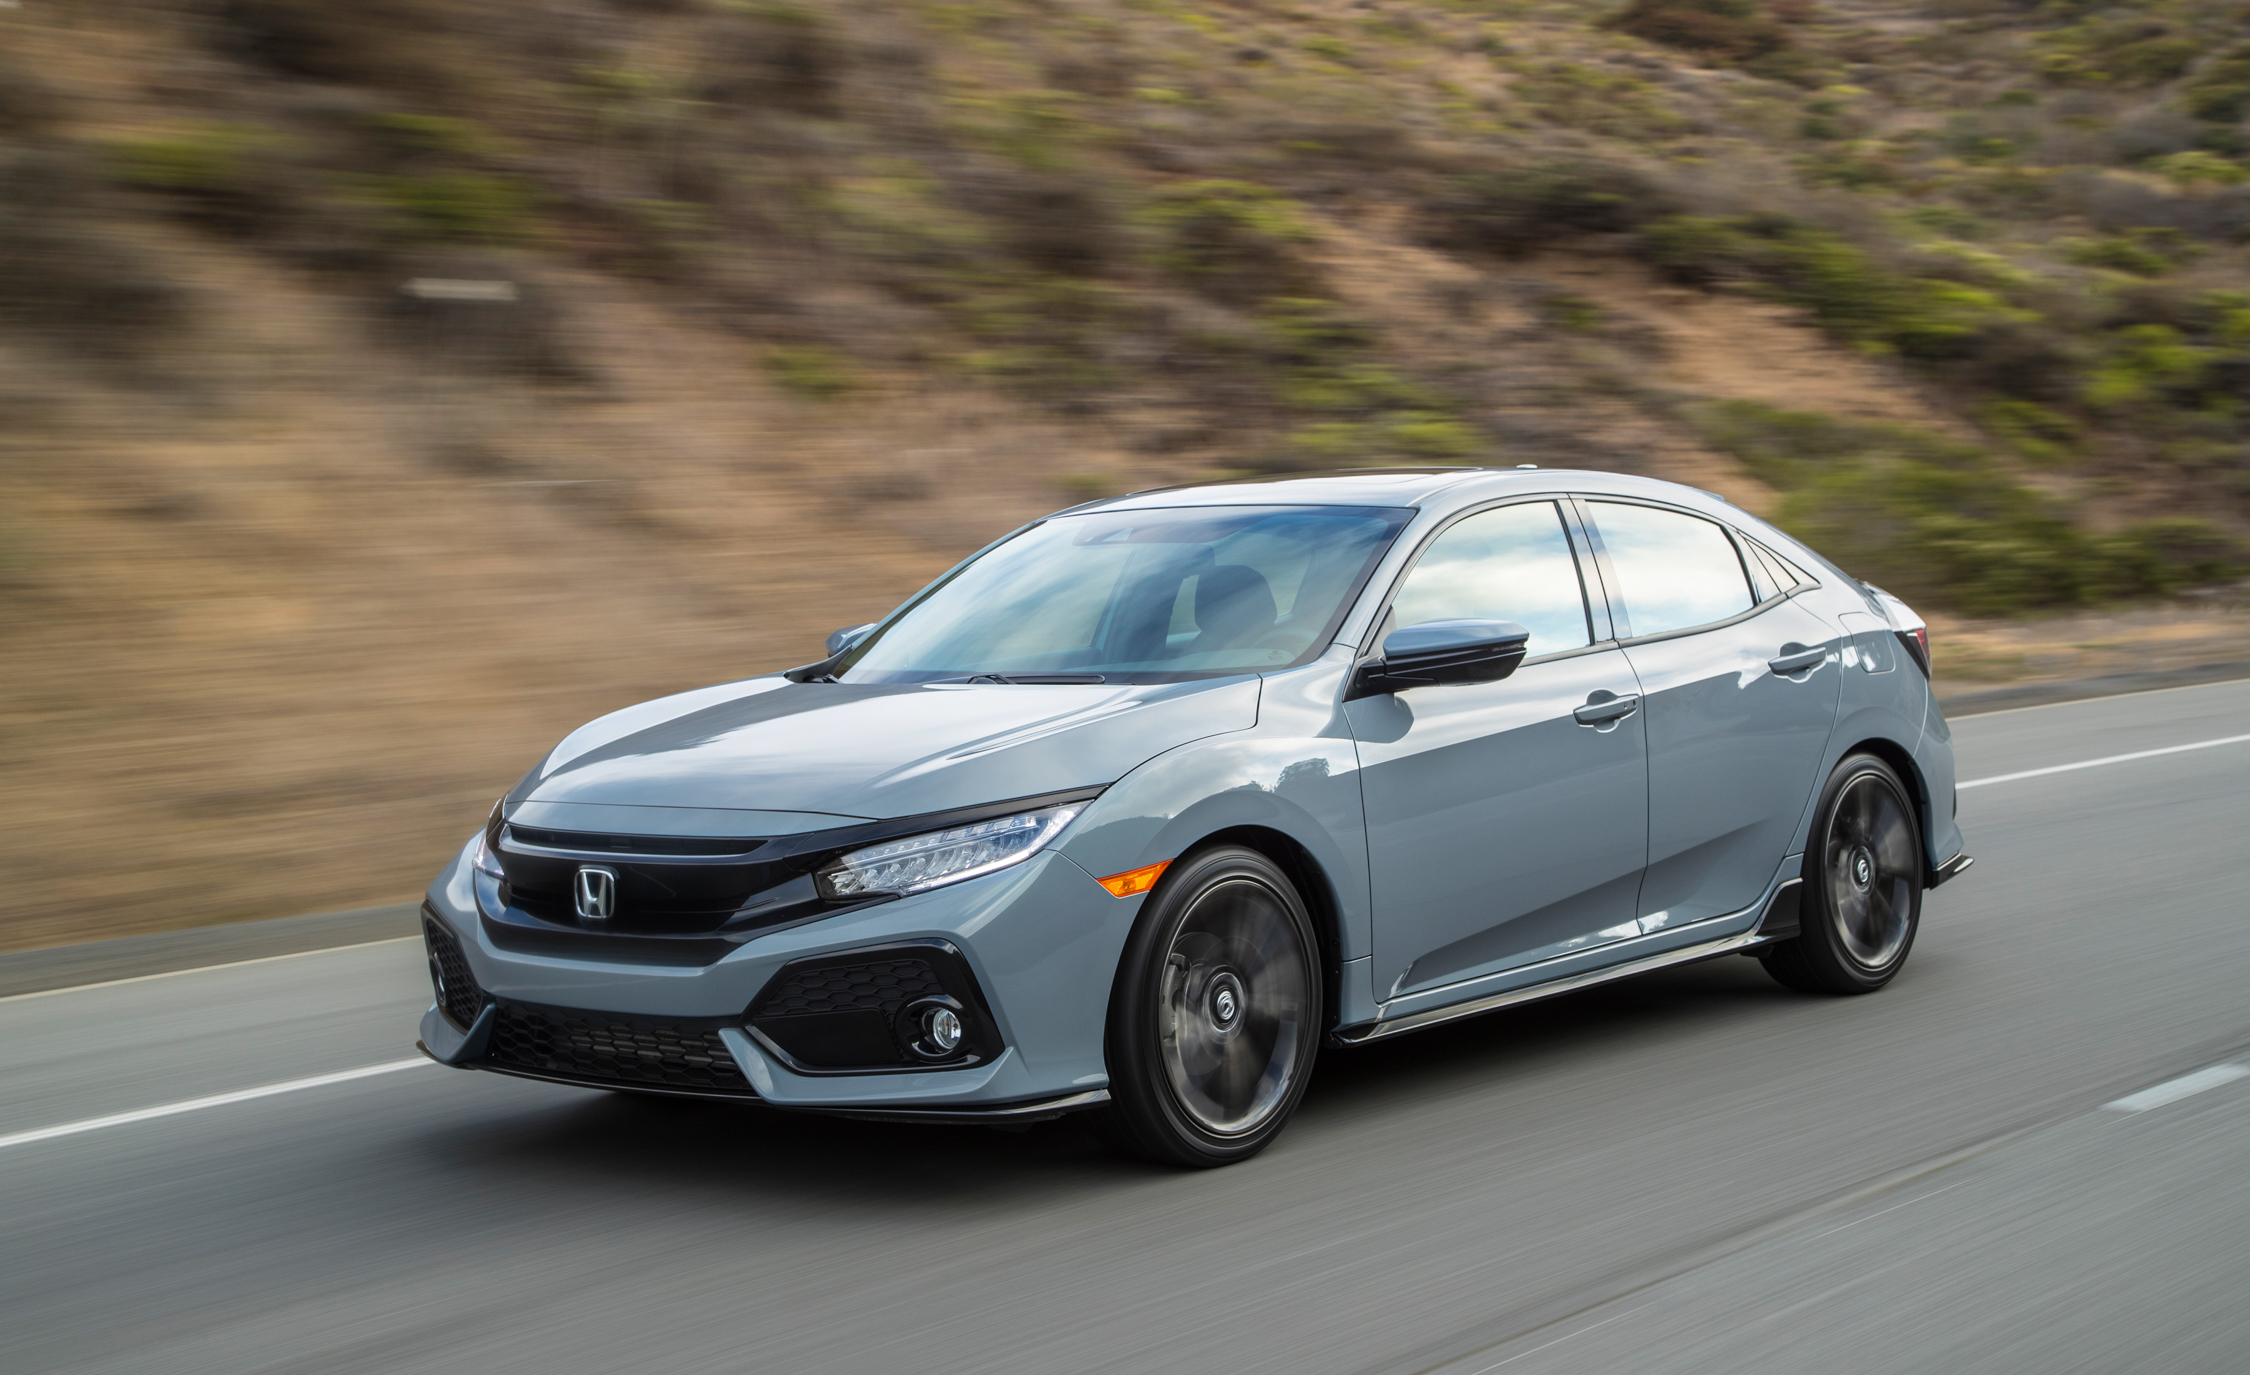 2017 Honda Civic Hatchback (Photo 5 of 34)